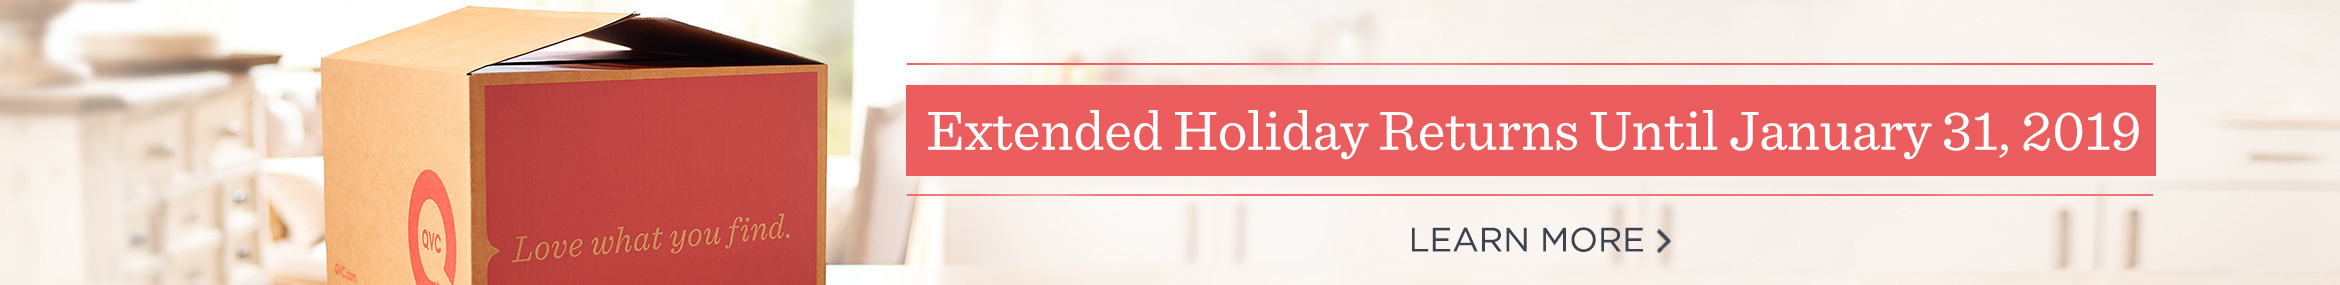 Extended Holiday Returns Until January 31, 2019,  Learn More